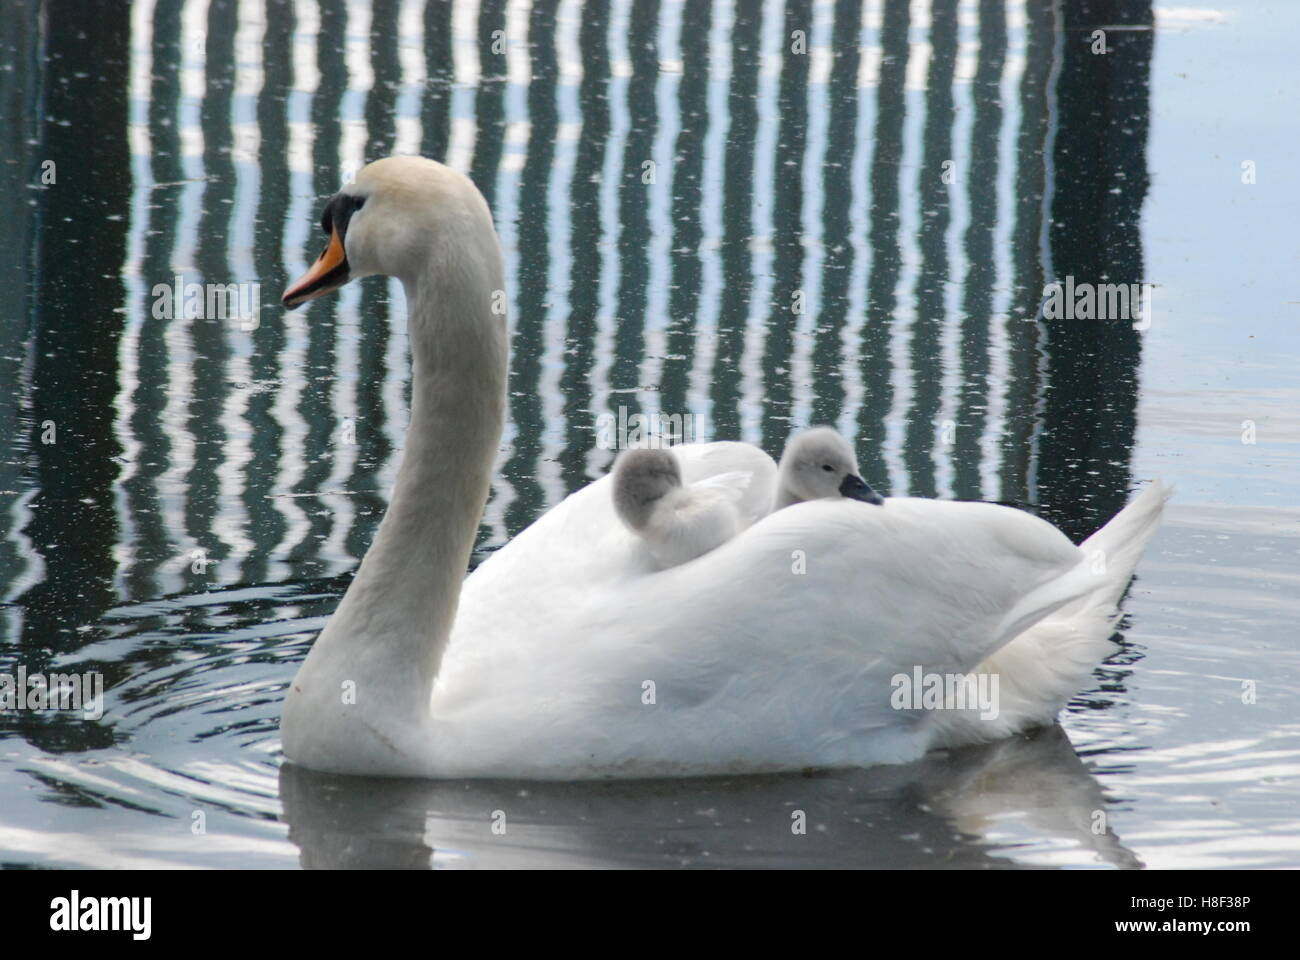 Mute swan (Cygnus olor) with two young cygnets riding on its back - Stock Image